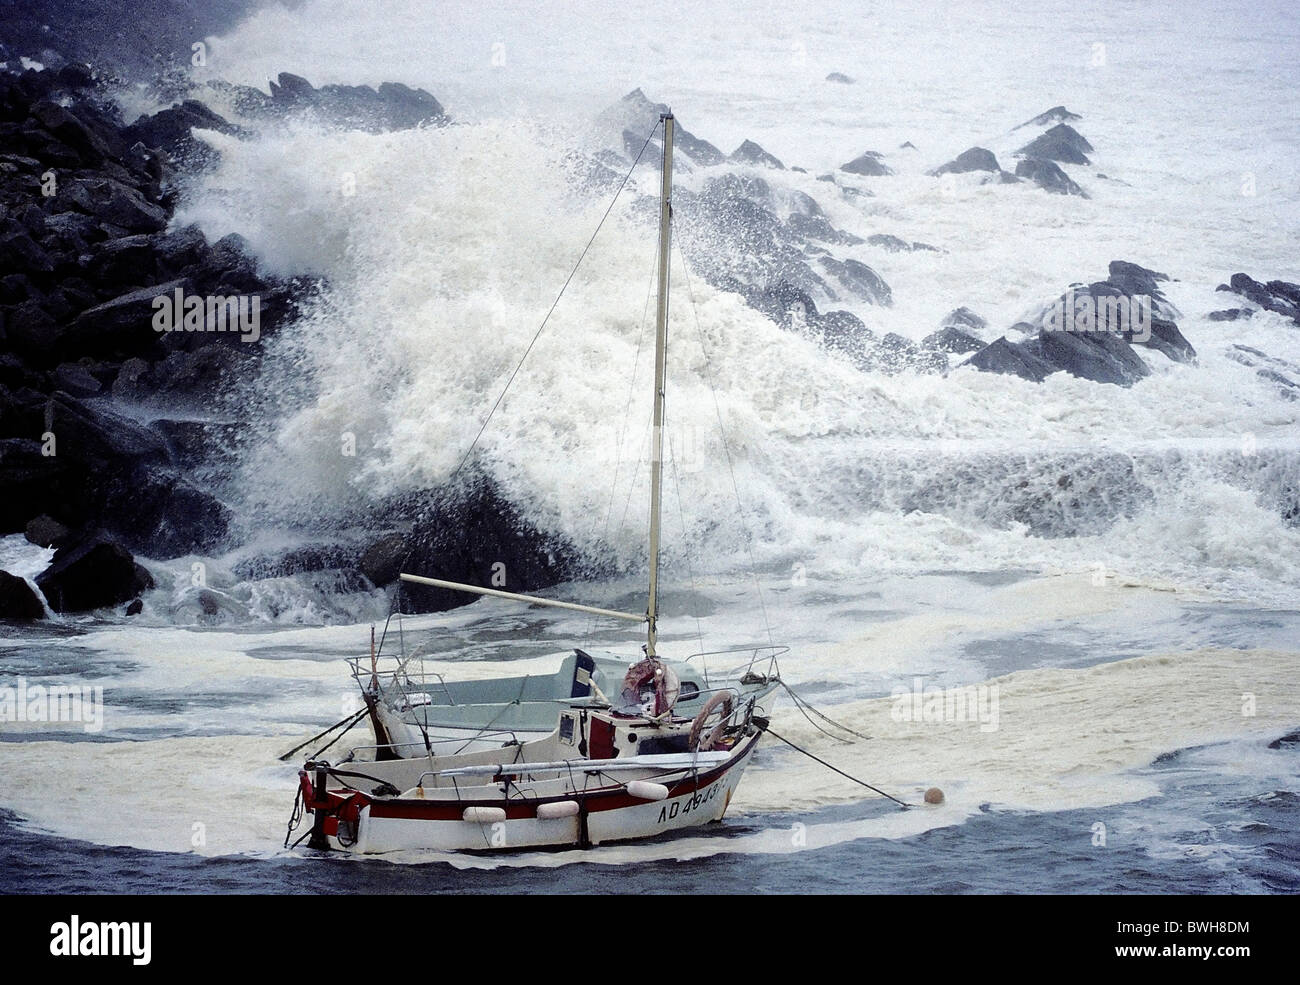 High waves crashing over rocks, rocking small boats, stormy seas on the Brittany coast, hurricane, Finistere, Brittany, - Stock Image